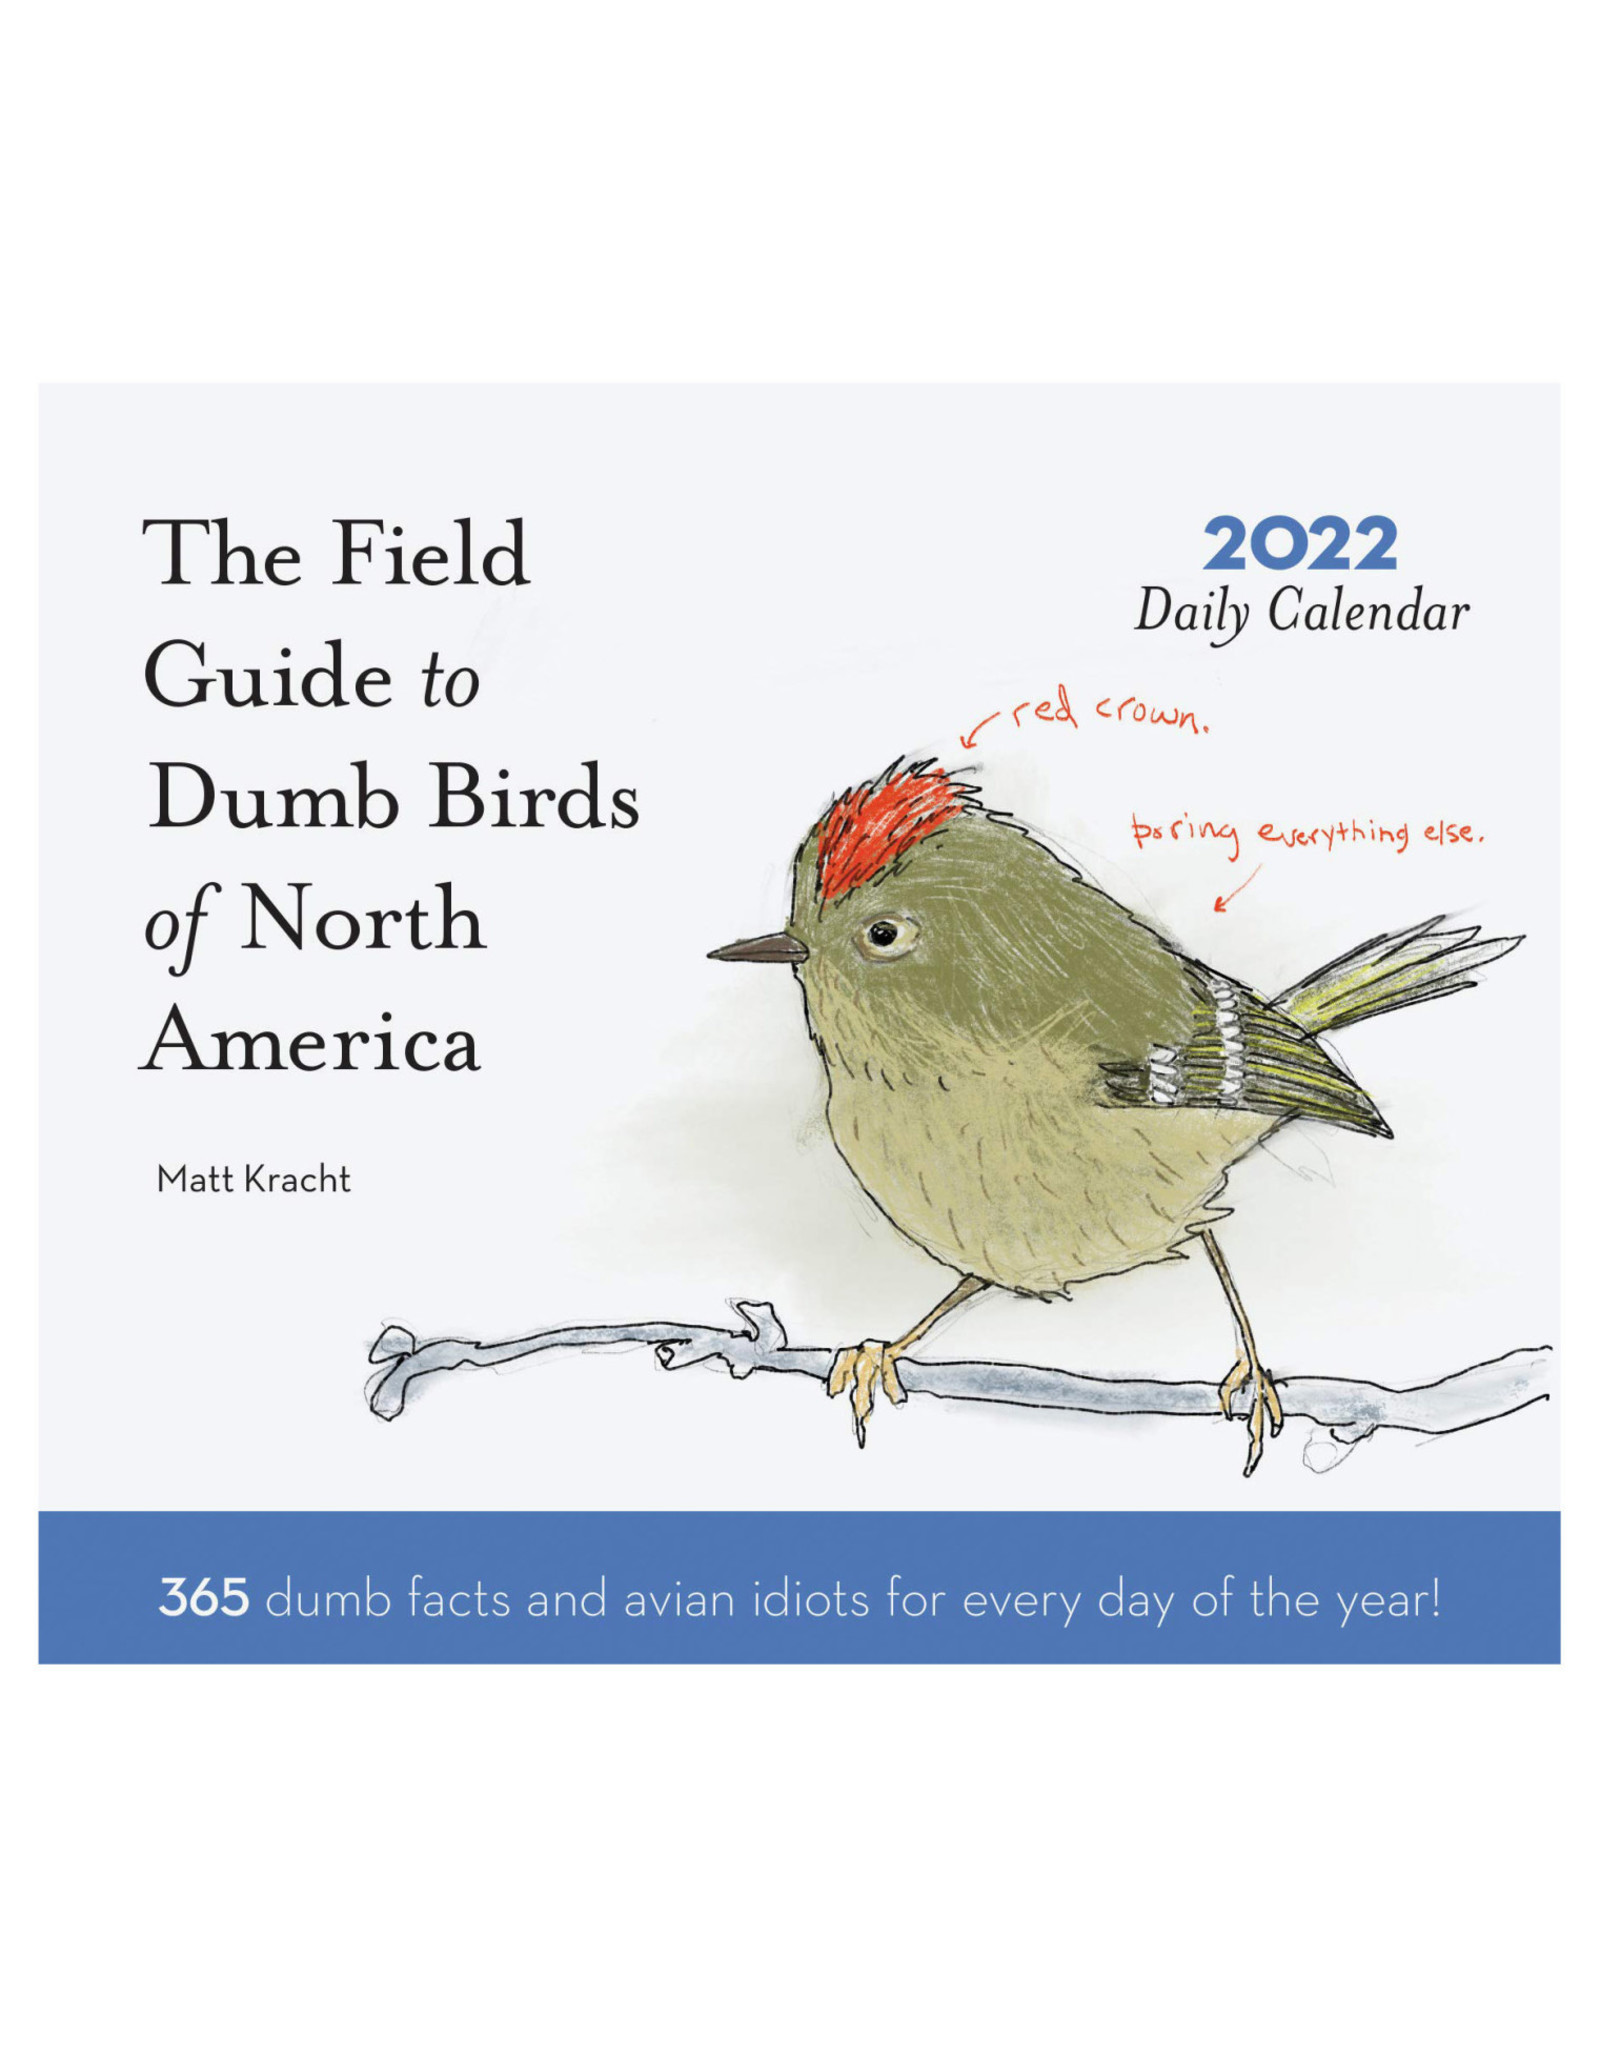 The Field Guide to Dumb Birds 2022 Pad Calendar